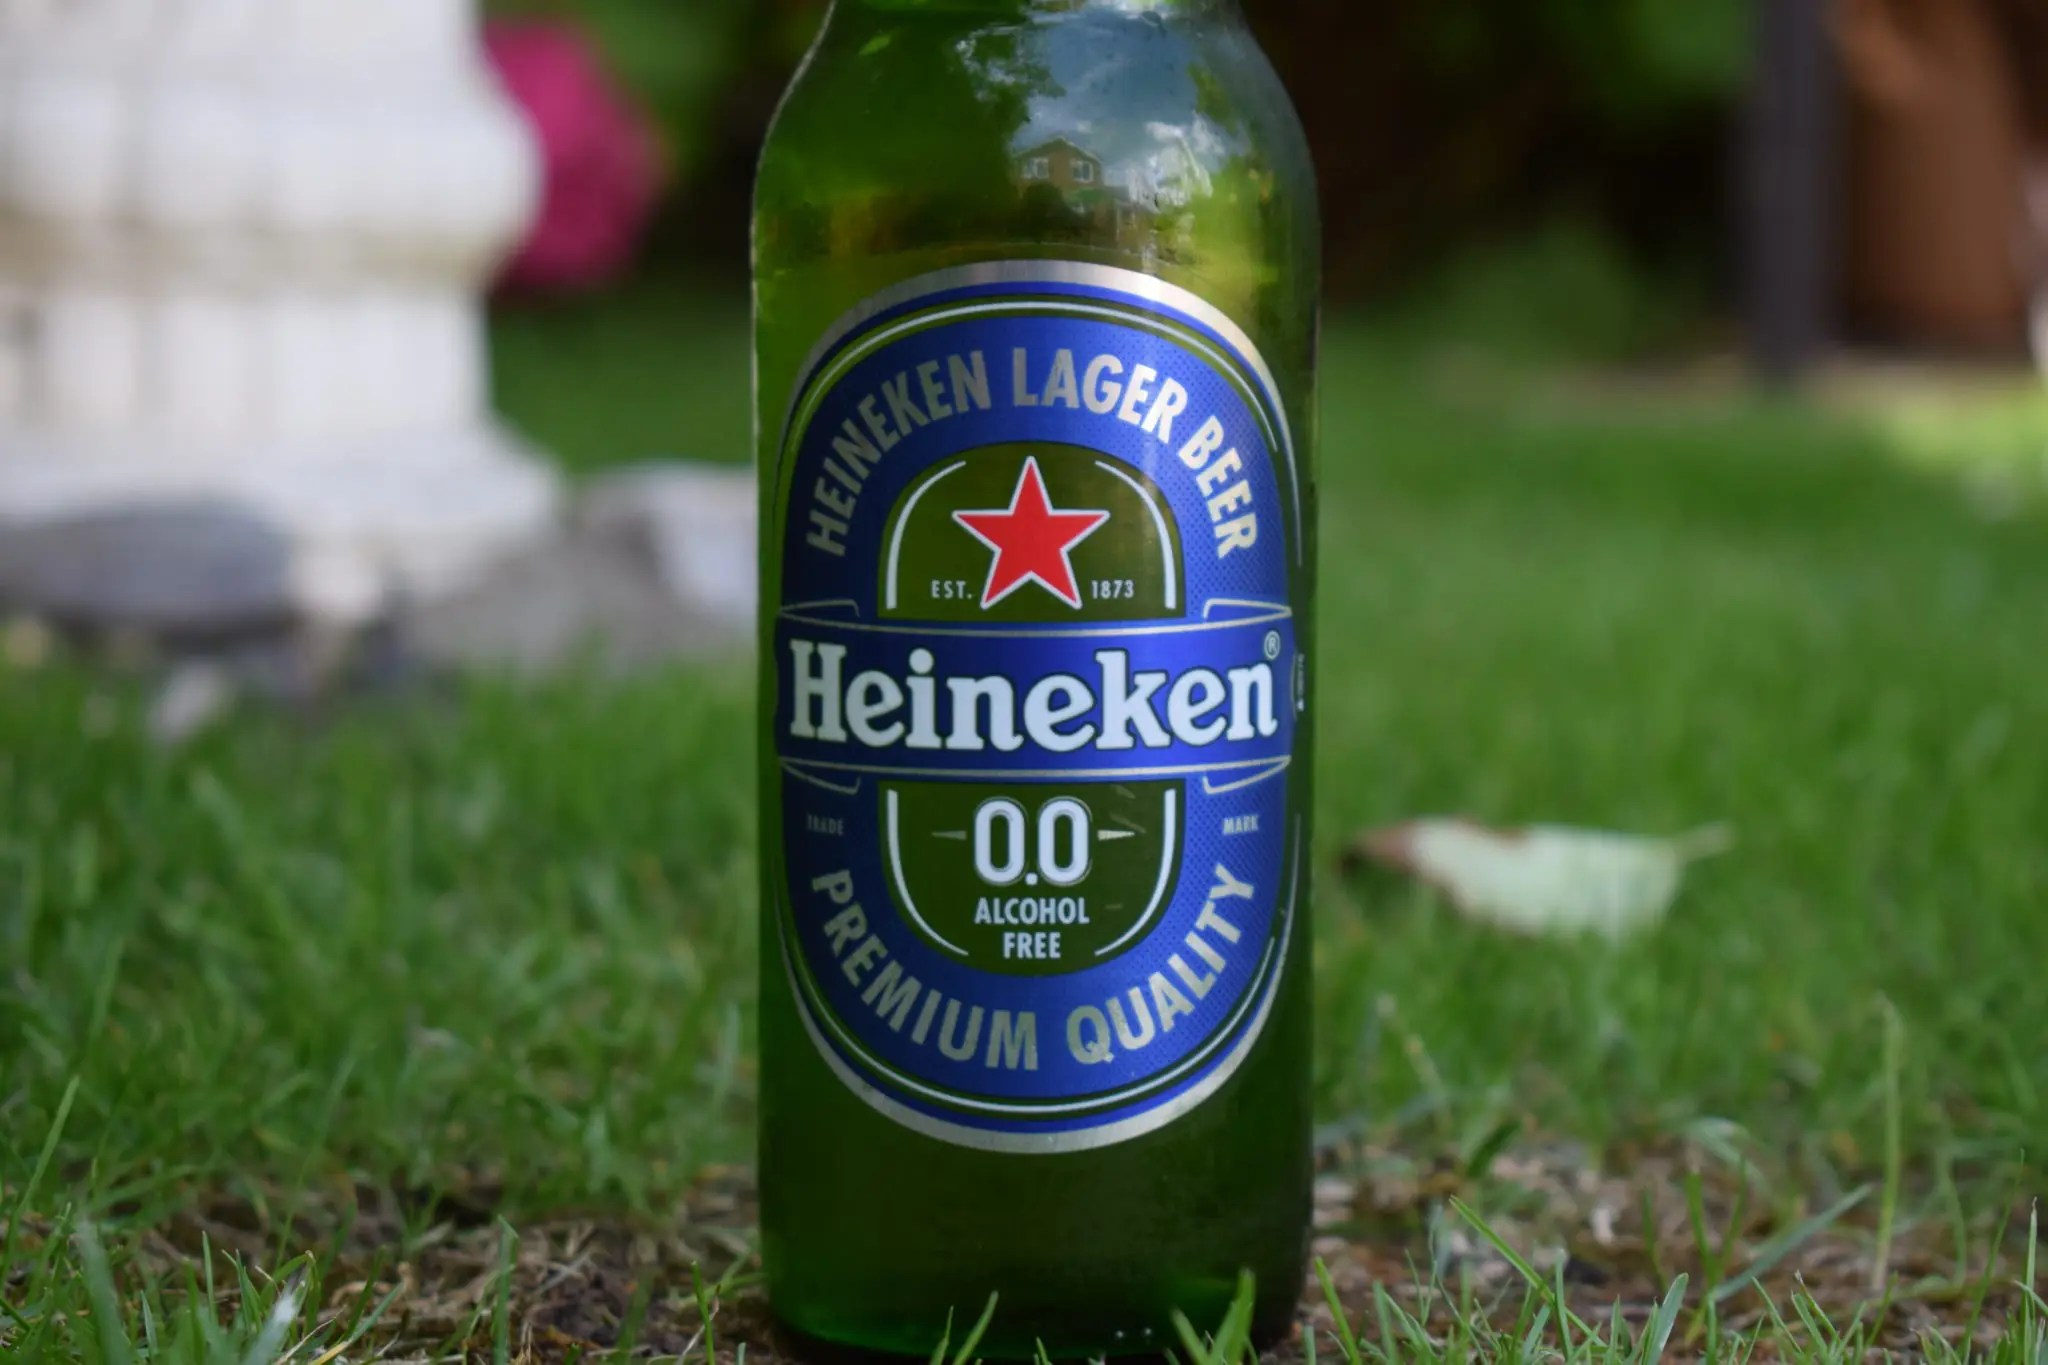 Heineken '0 0' Review - Alcohol-Free (0 05%) Lager